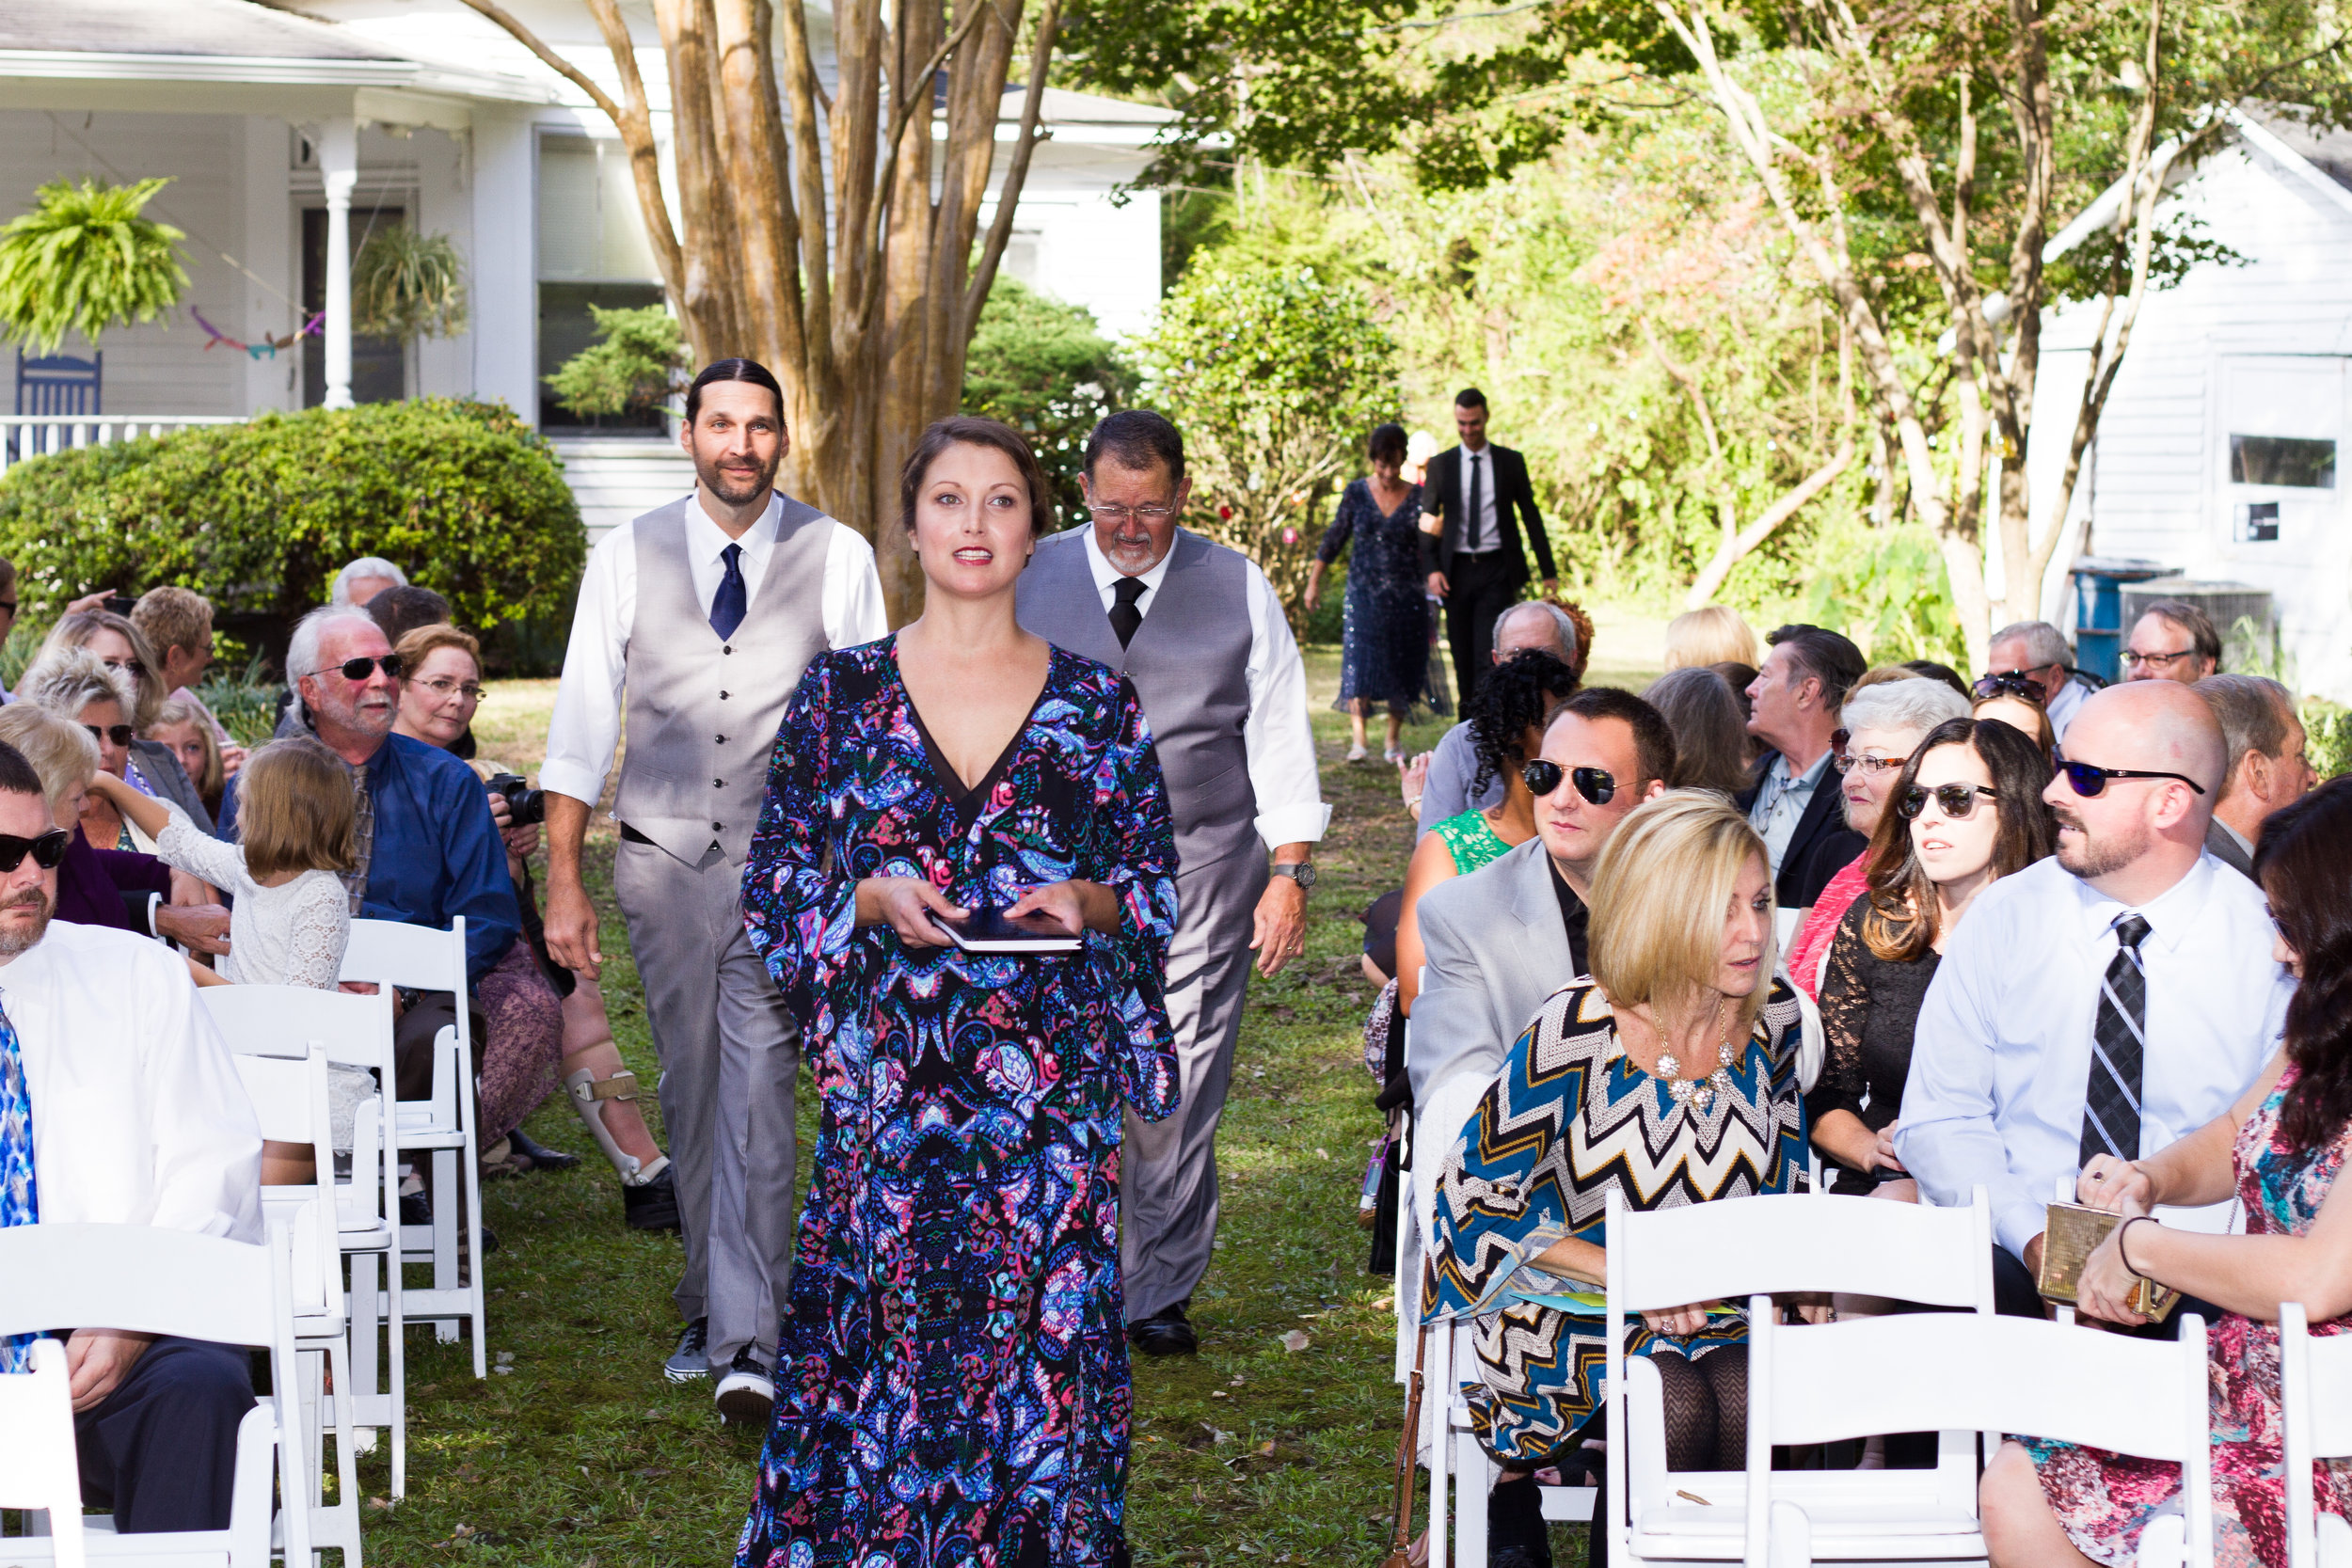 Jacqueline and Shawn Wedding (173 of 597).jpg